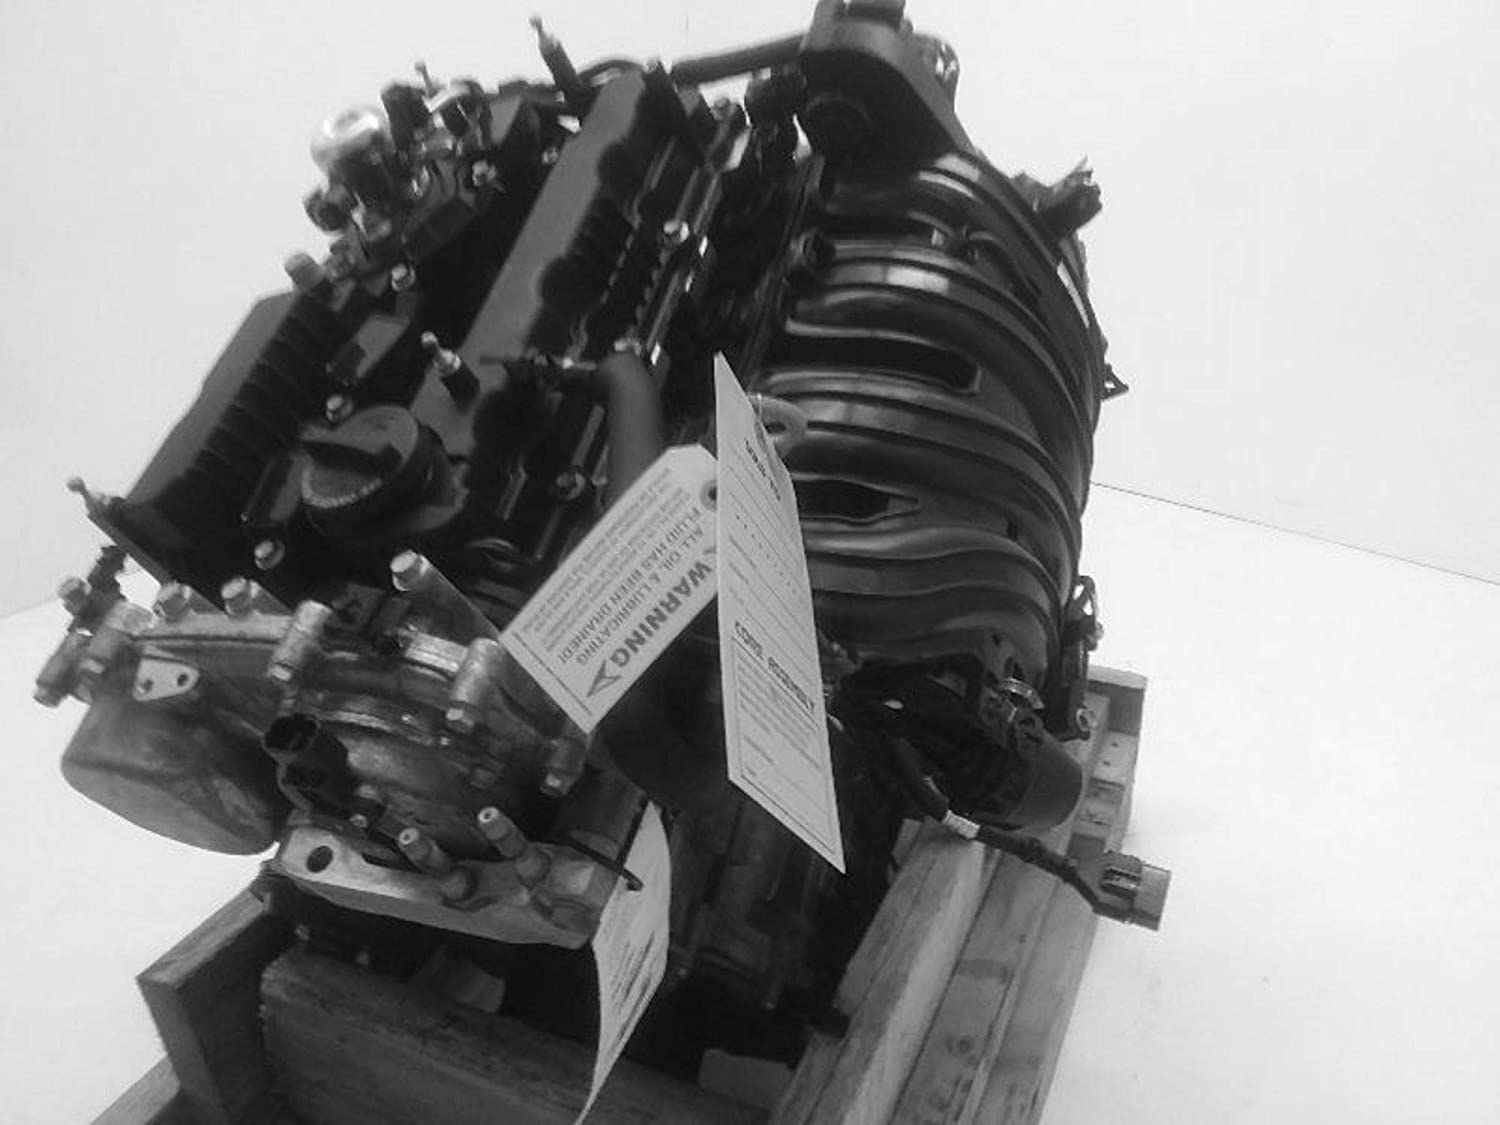 Save money Engine Complete Challenge the lowest price of Japan Assembly fits Kia Optima 2.4L VIN Sorento 8th 3